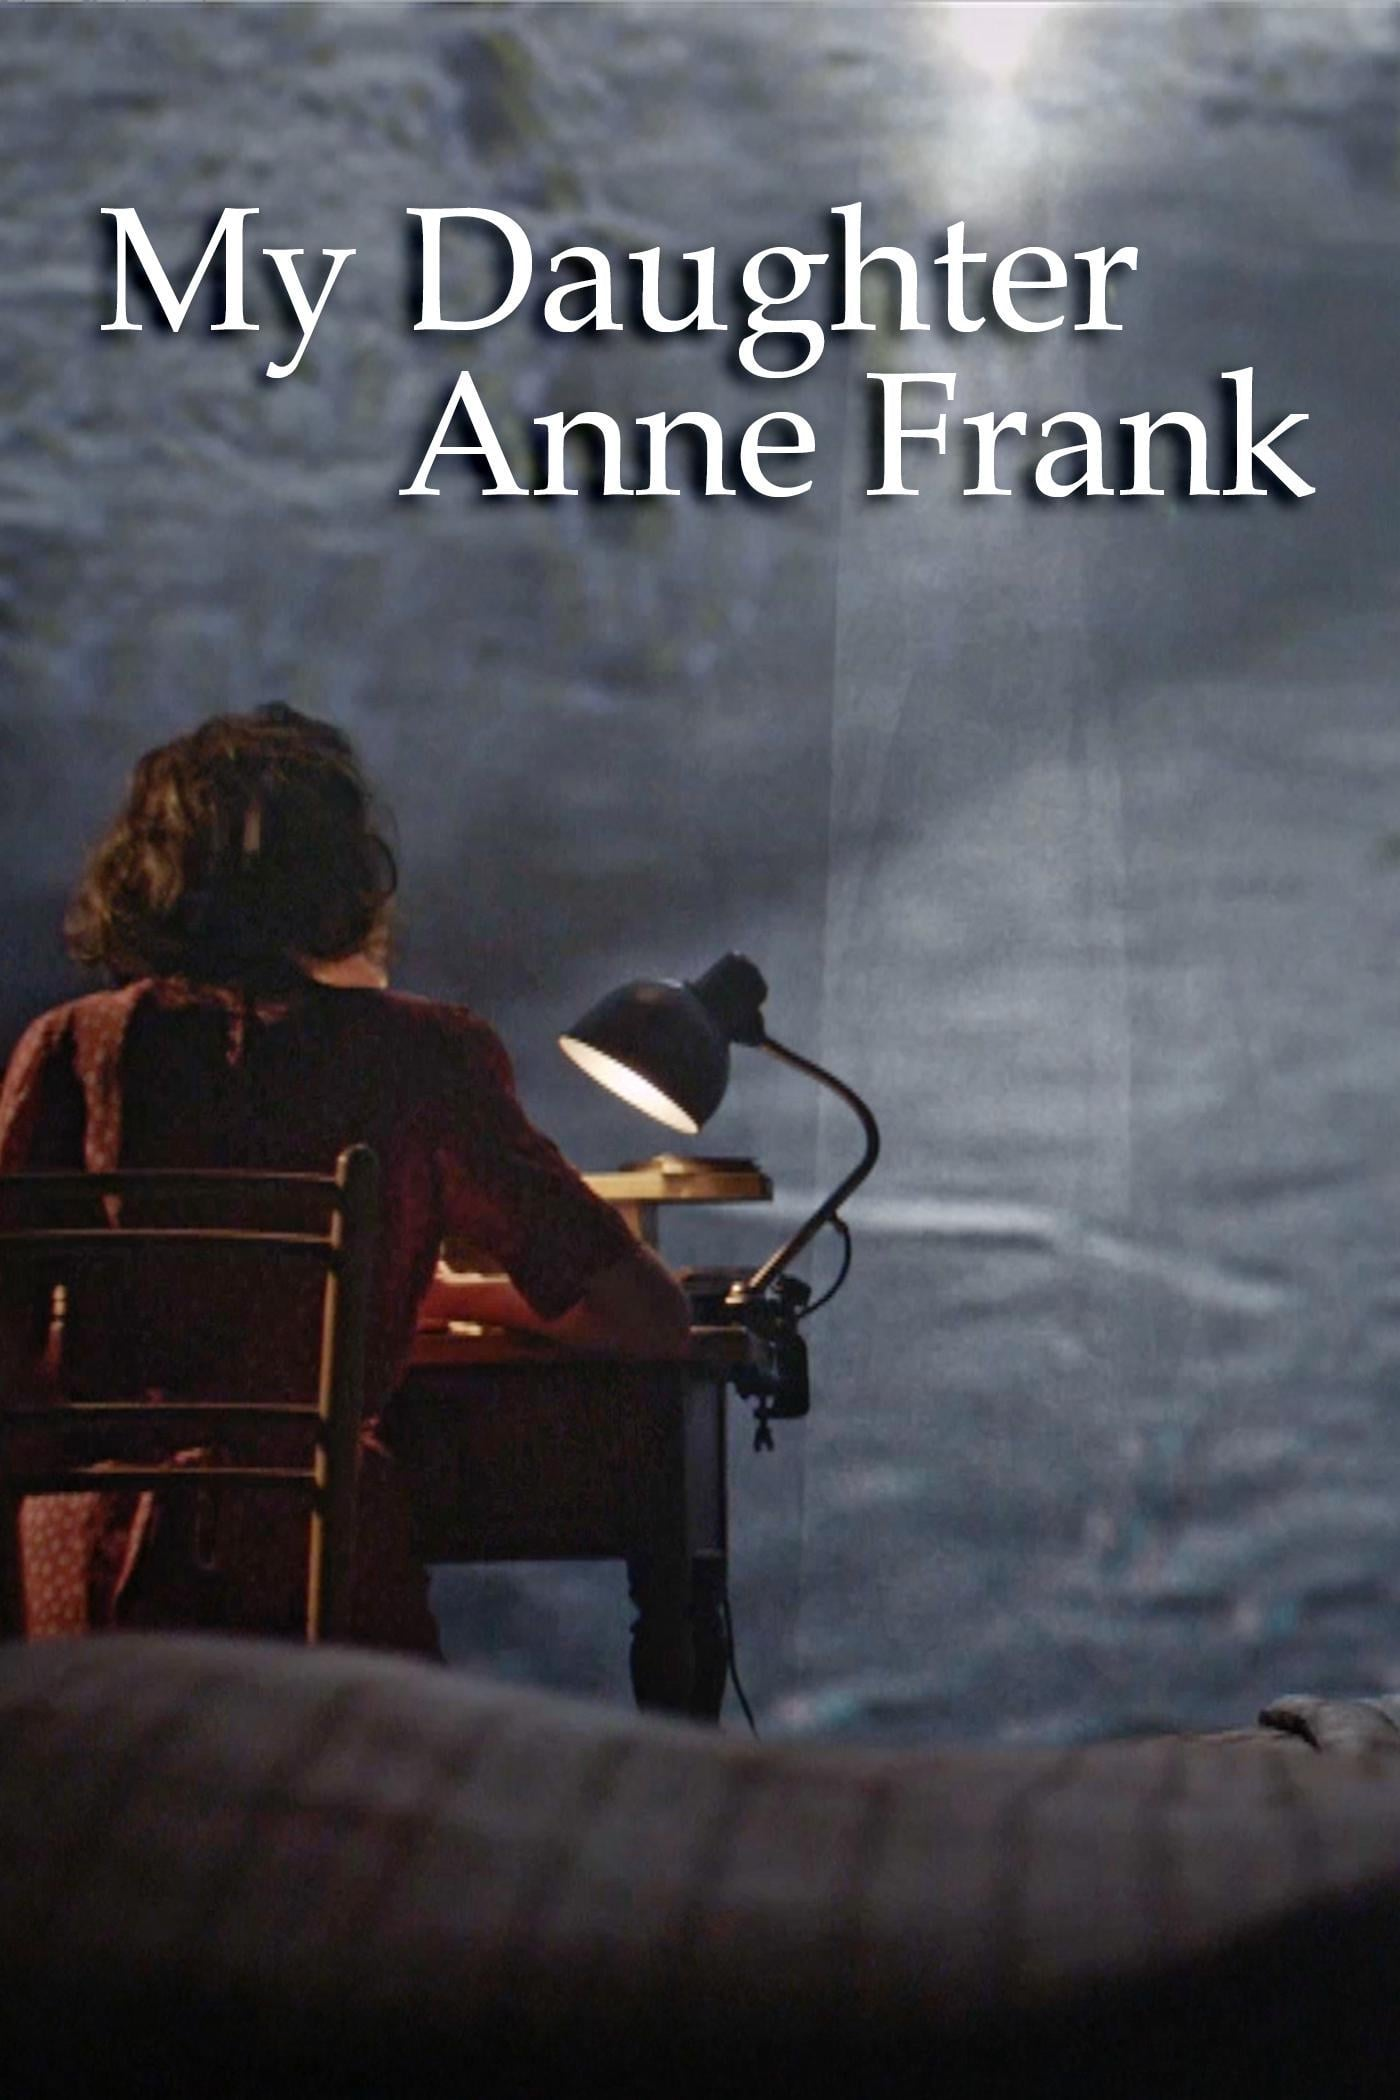 My Daughter Anne Frank (2014)